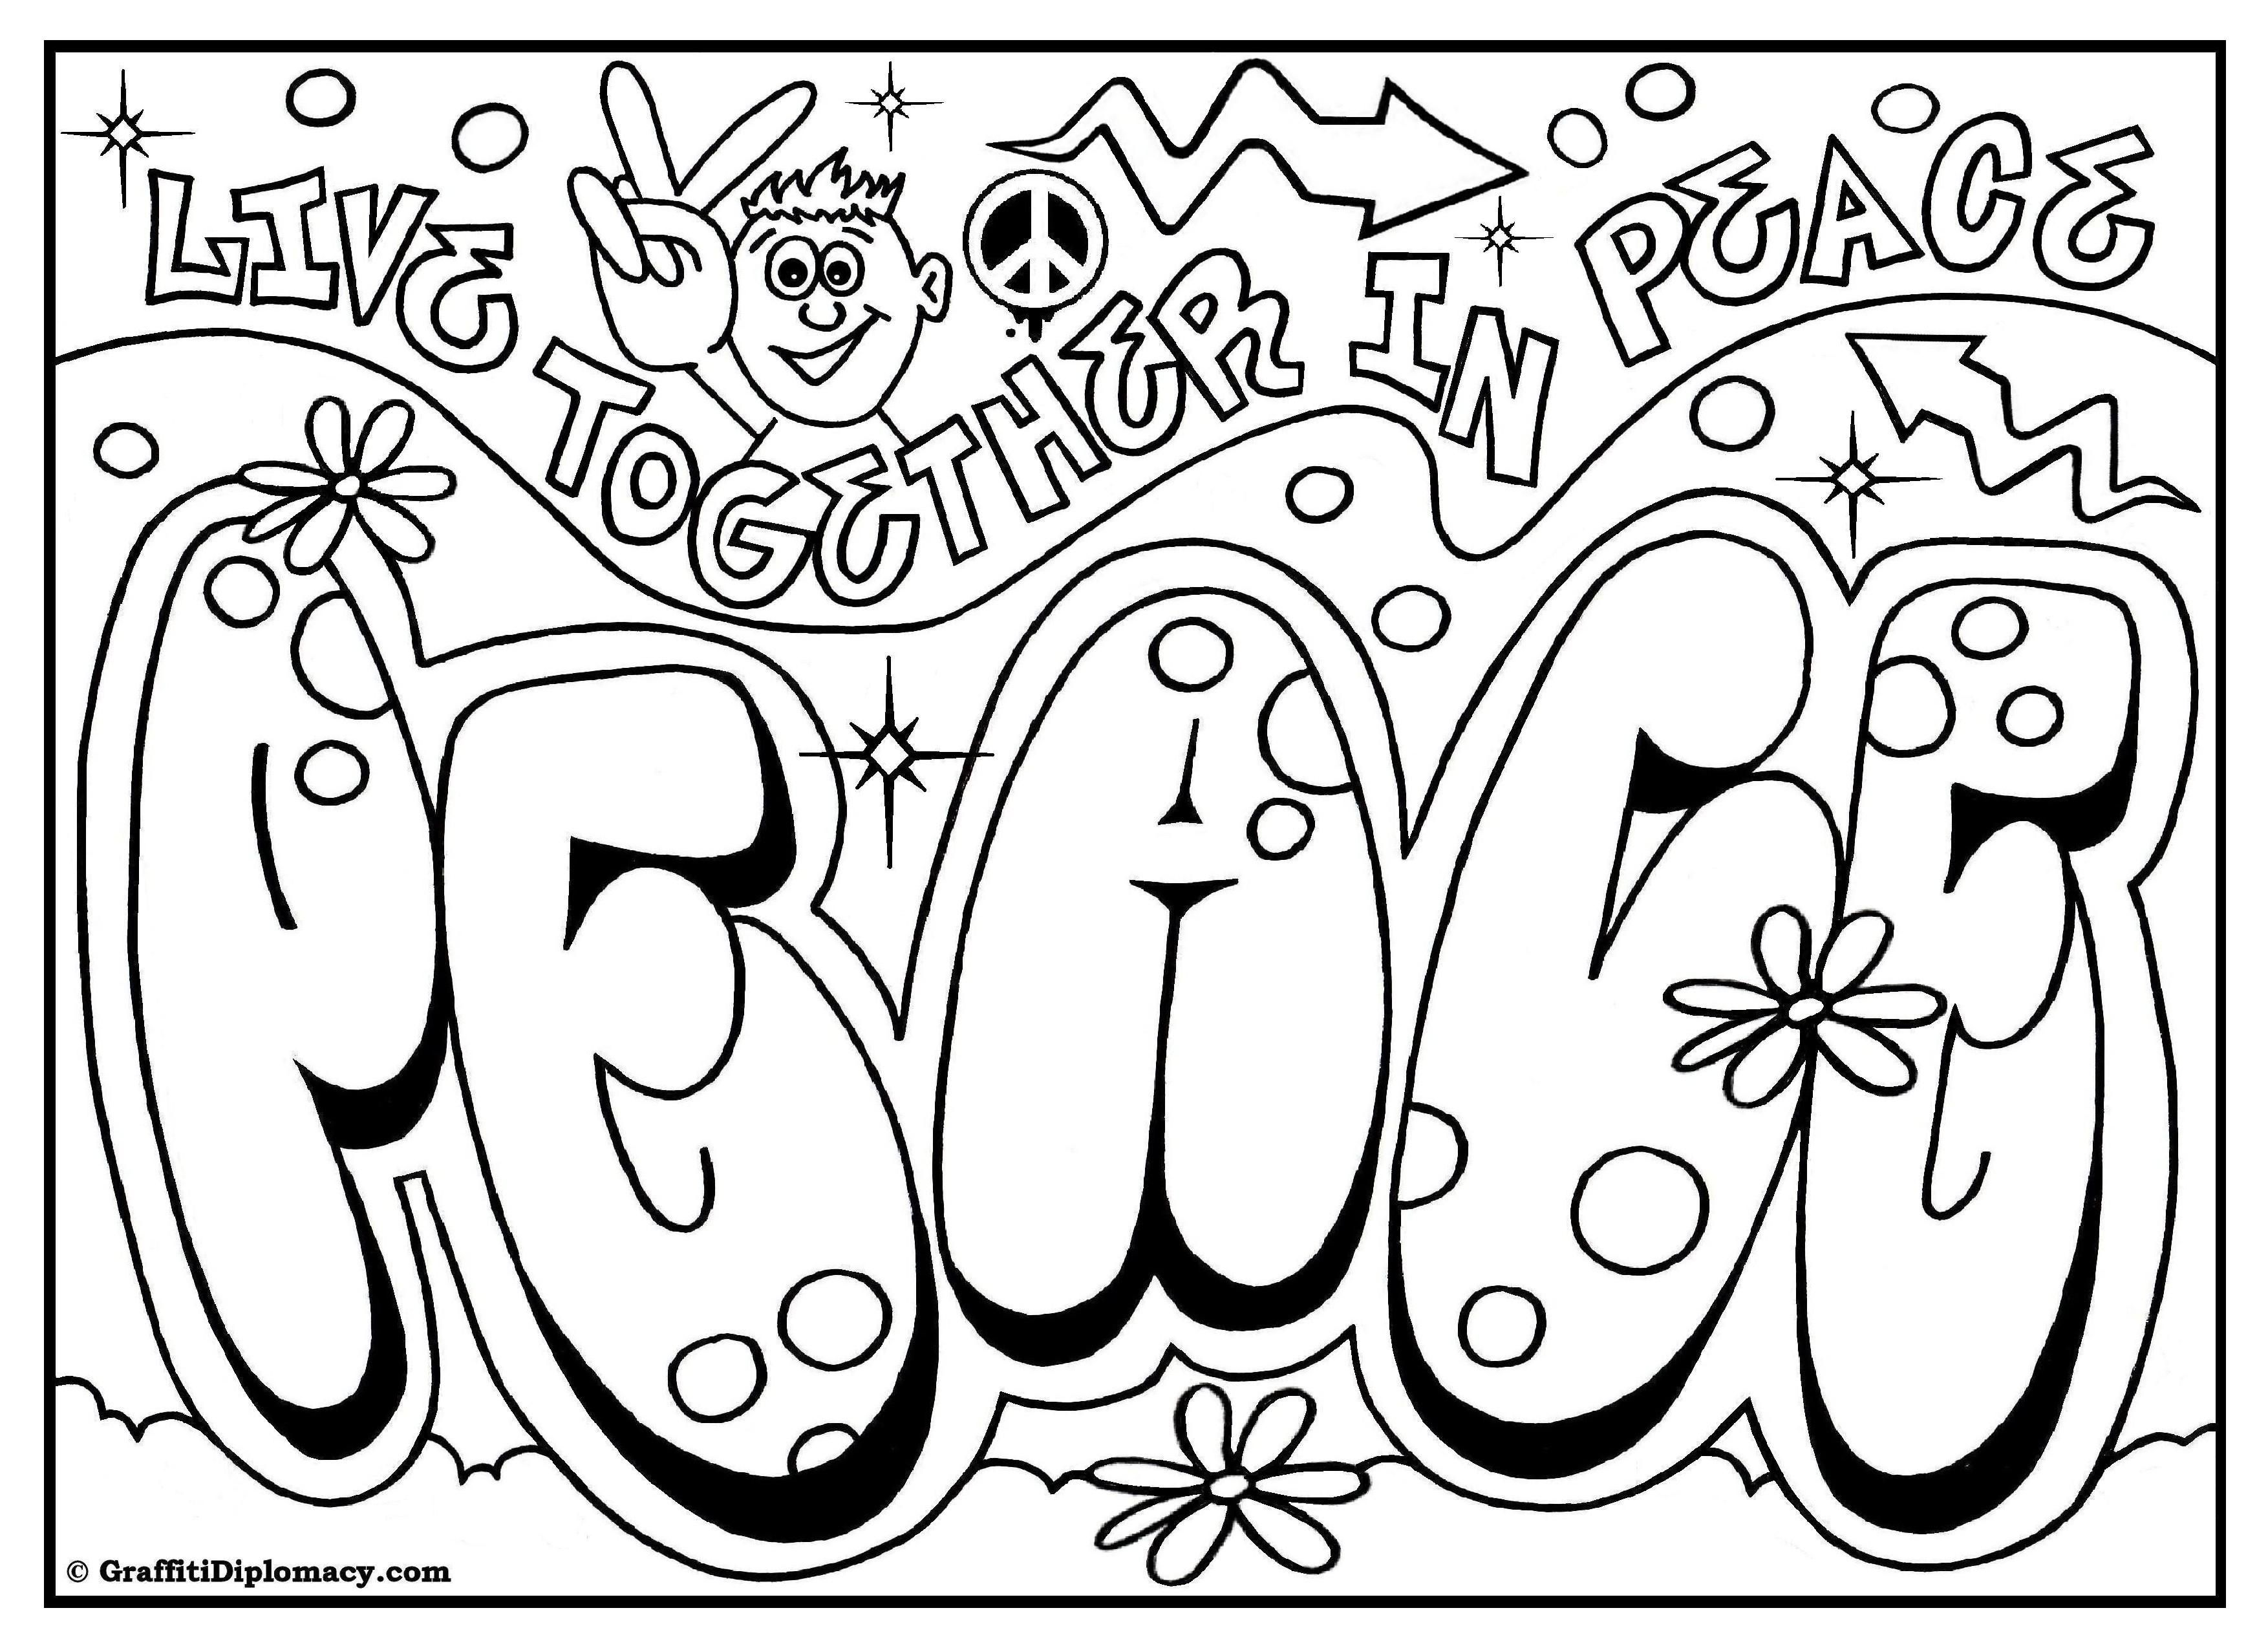 Cool Coloring Book Pages #10 - Free Printable Graffiti Coloring ...